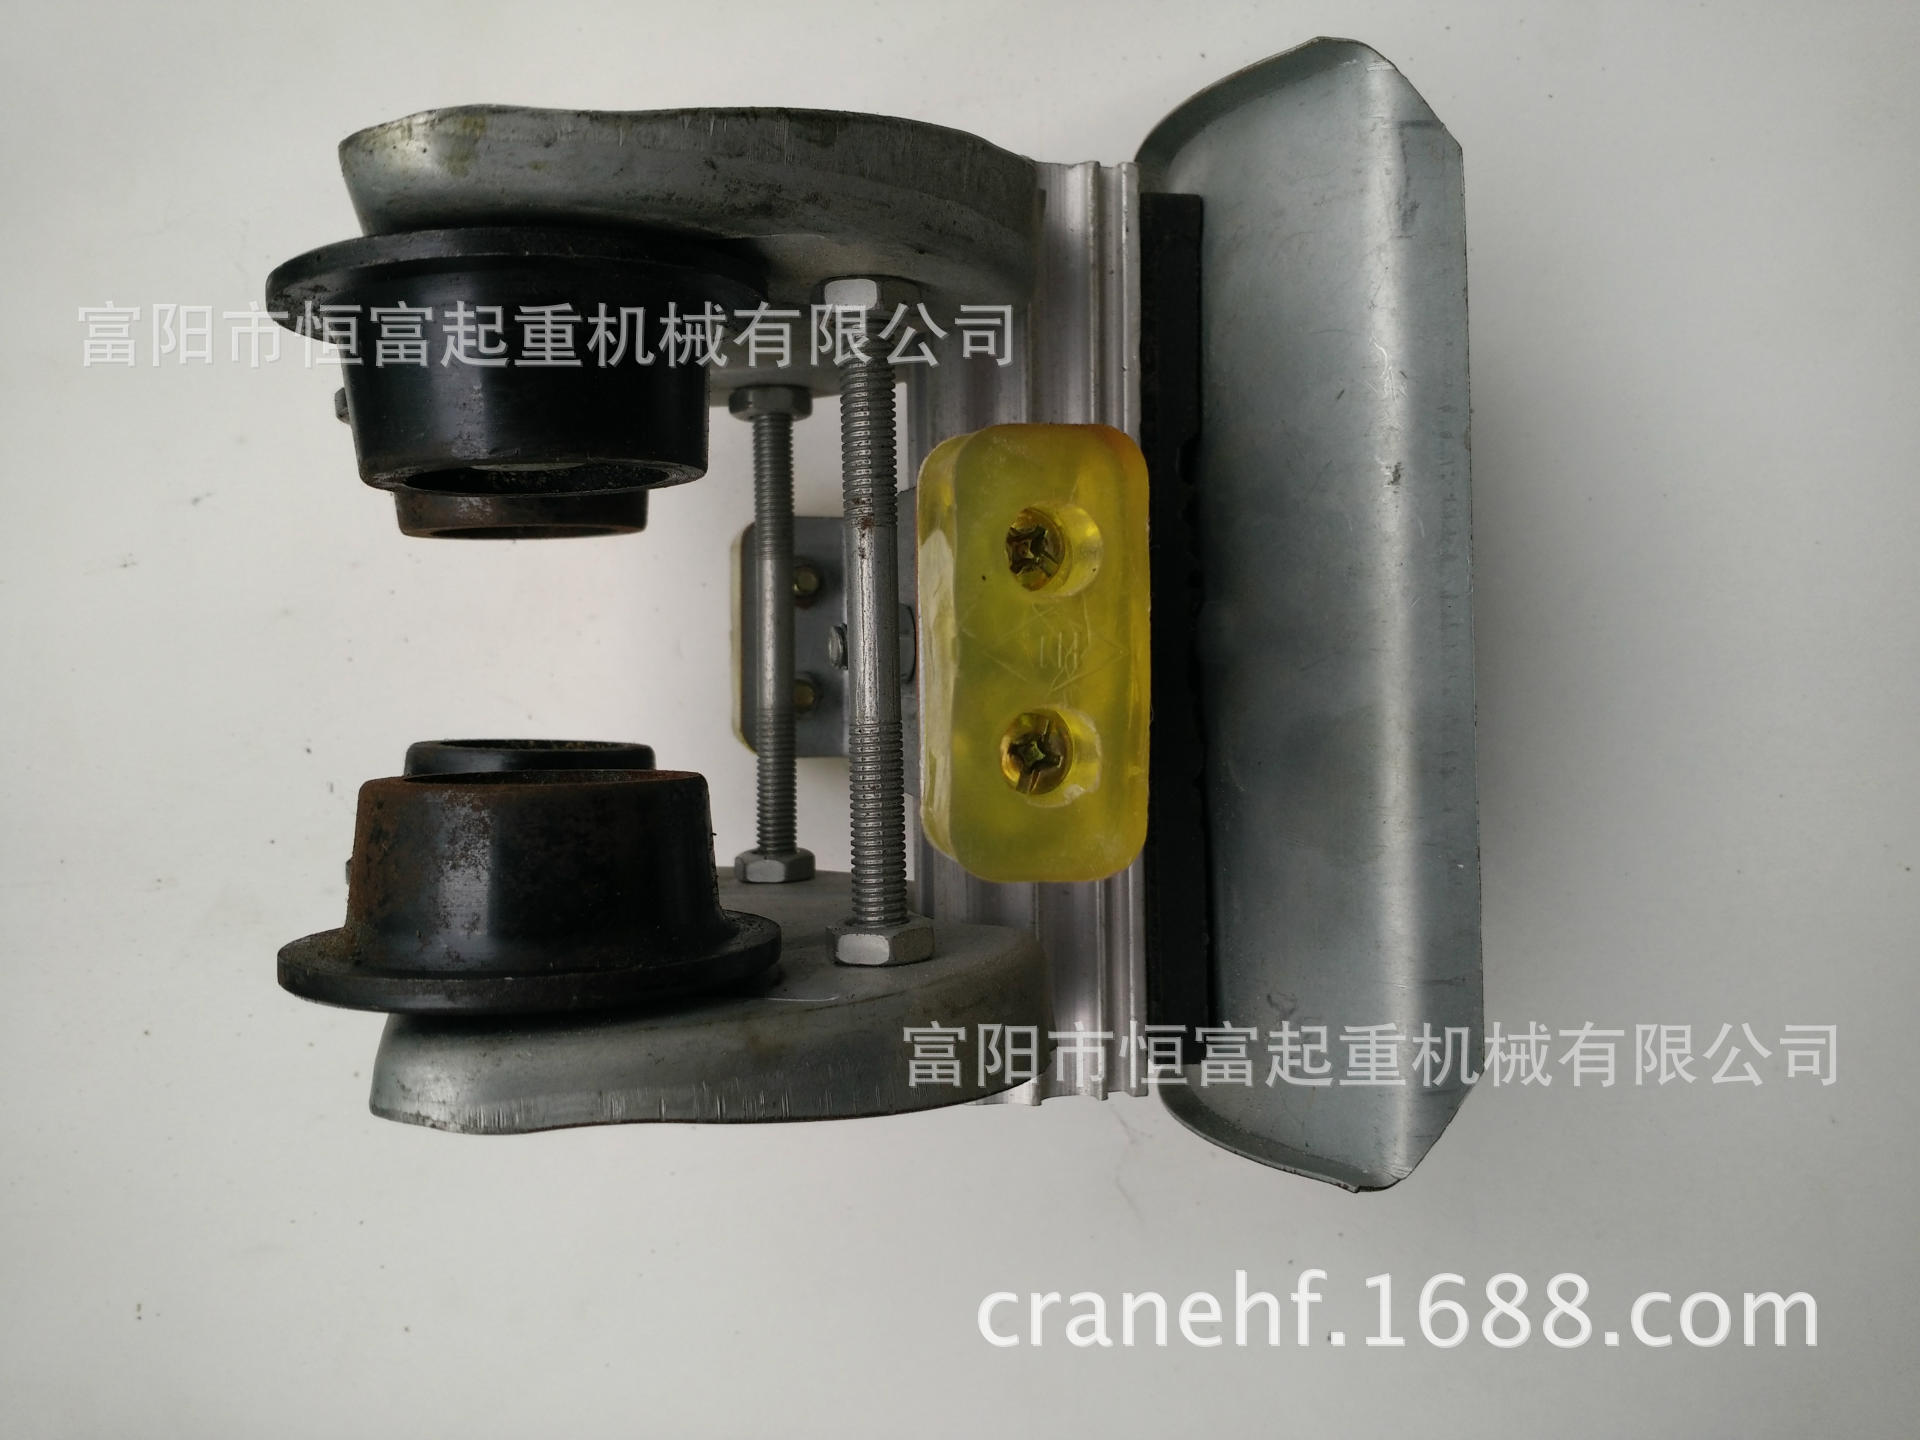 HF crane dedicated wire cable pulley pulley I-beam electric hoist pulley manufacturers selling